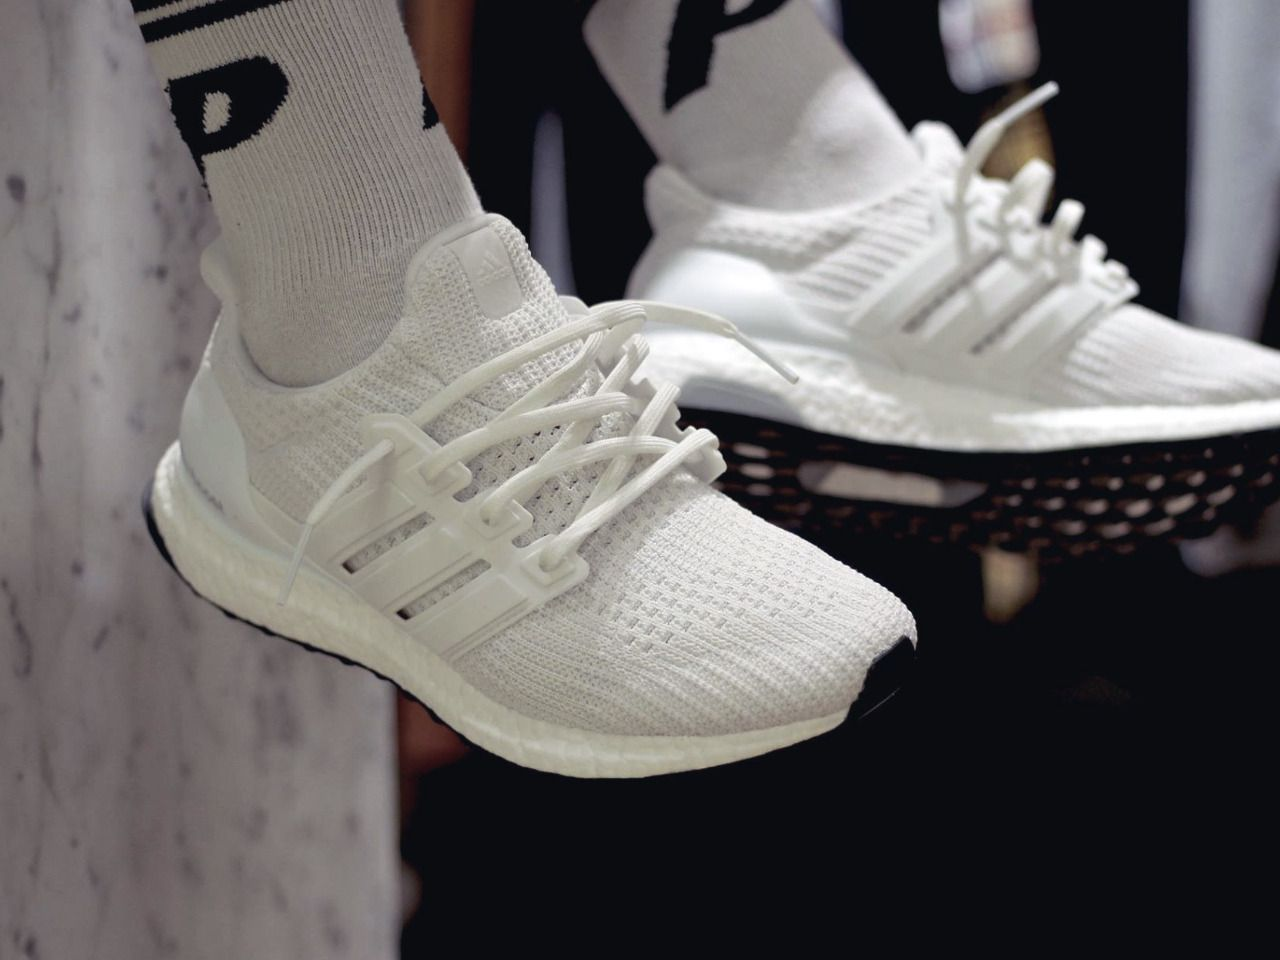 24b784d4e Adidas Ultra Boost 4.0 - Triple White - 2017 by Cerje Jack-l Buy  viaGlamour